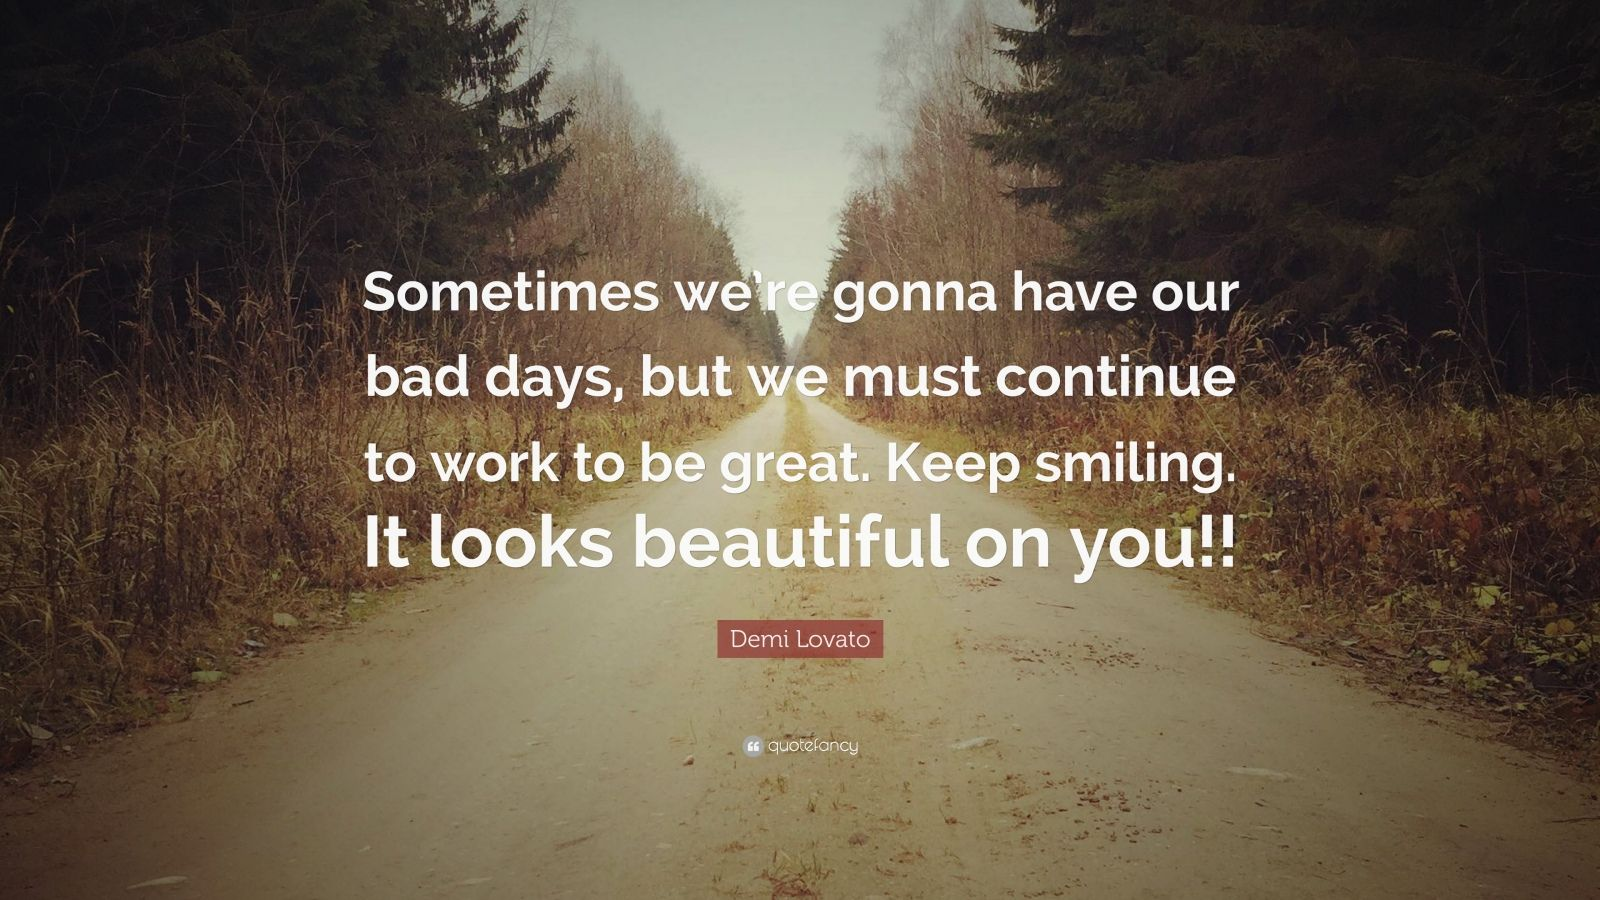 """Demi Lovato Quote: """"Sometimes we're gonna have our bad days, but we must continue to work to be great. Keep smiling. It looks beautiful on you!!"""""""